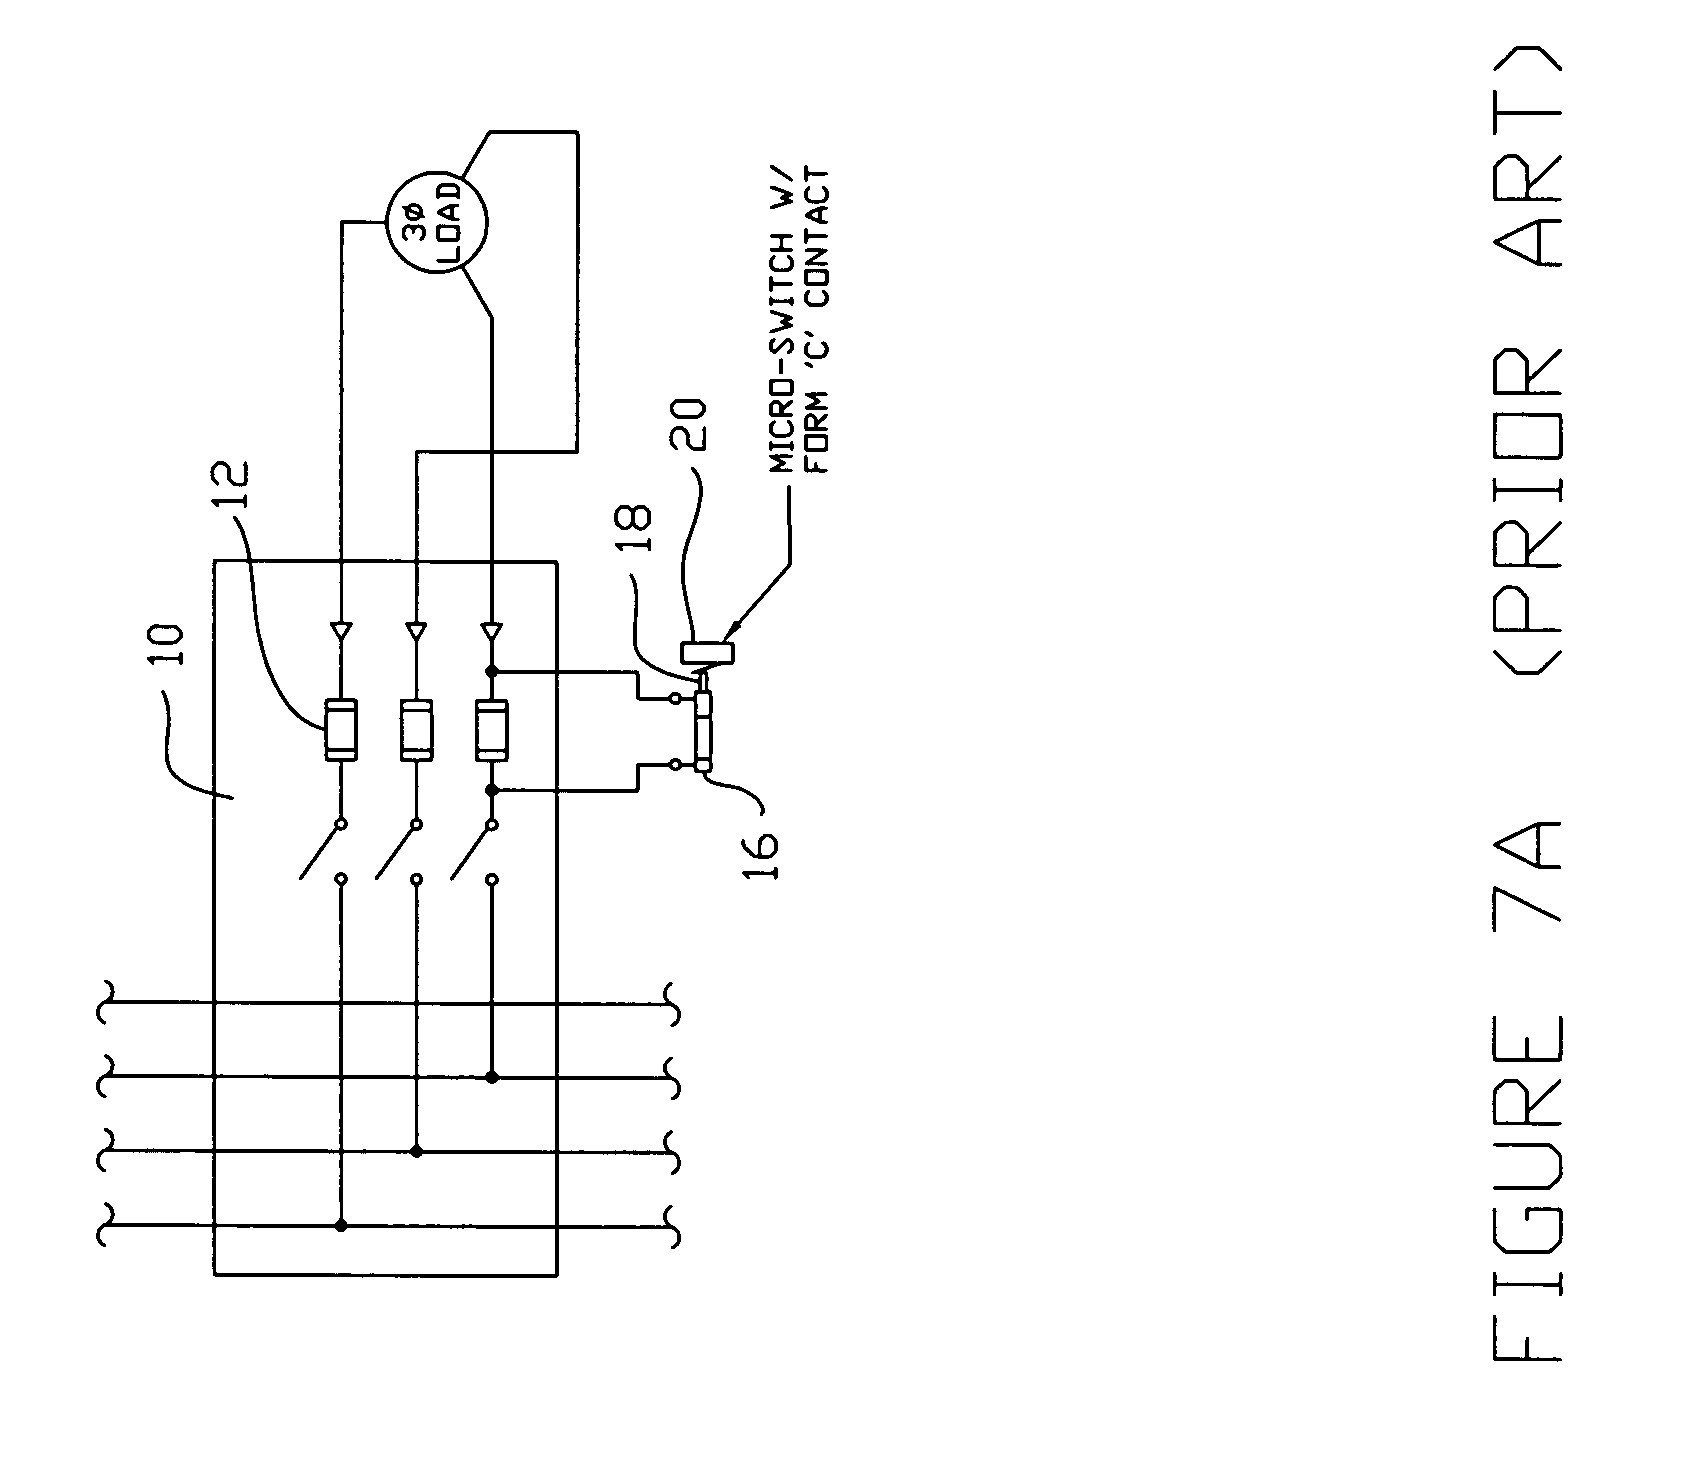 Square D 8903 Lighting Contactor Wiring Diagram